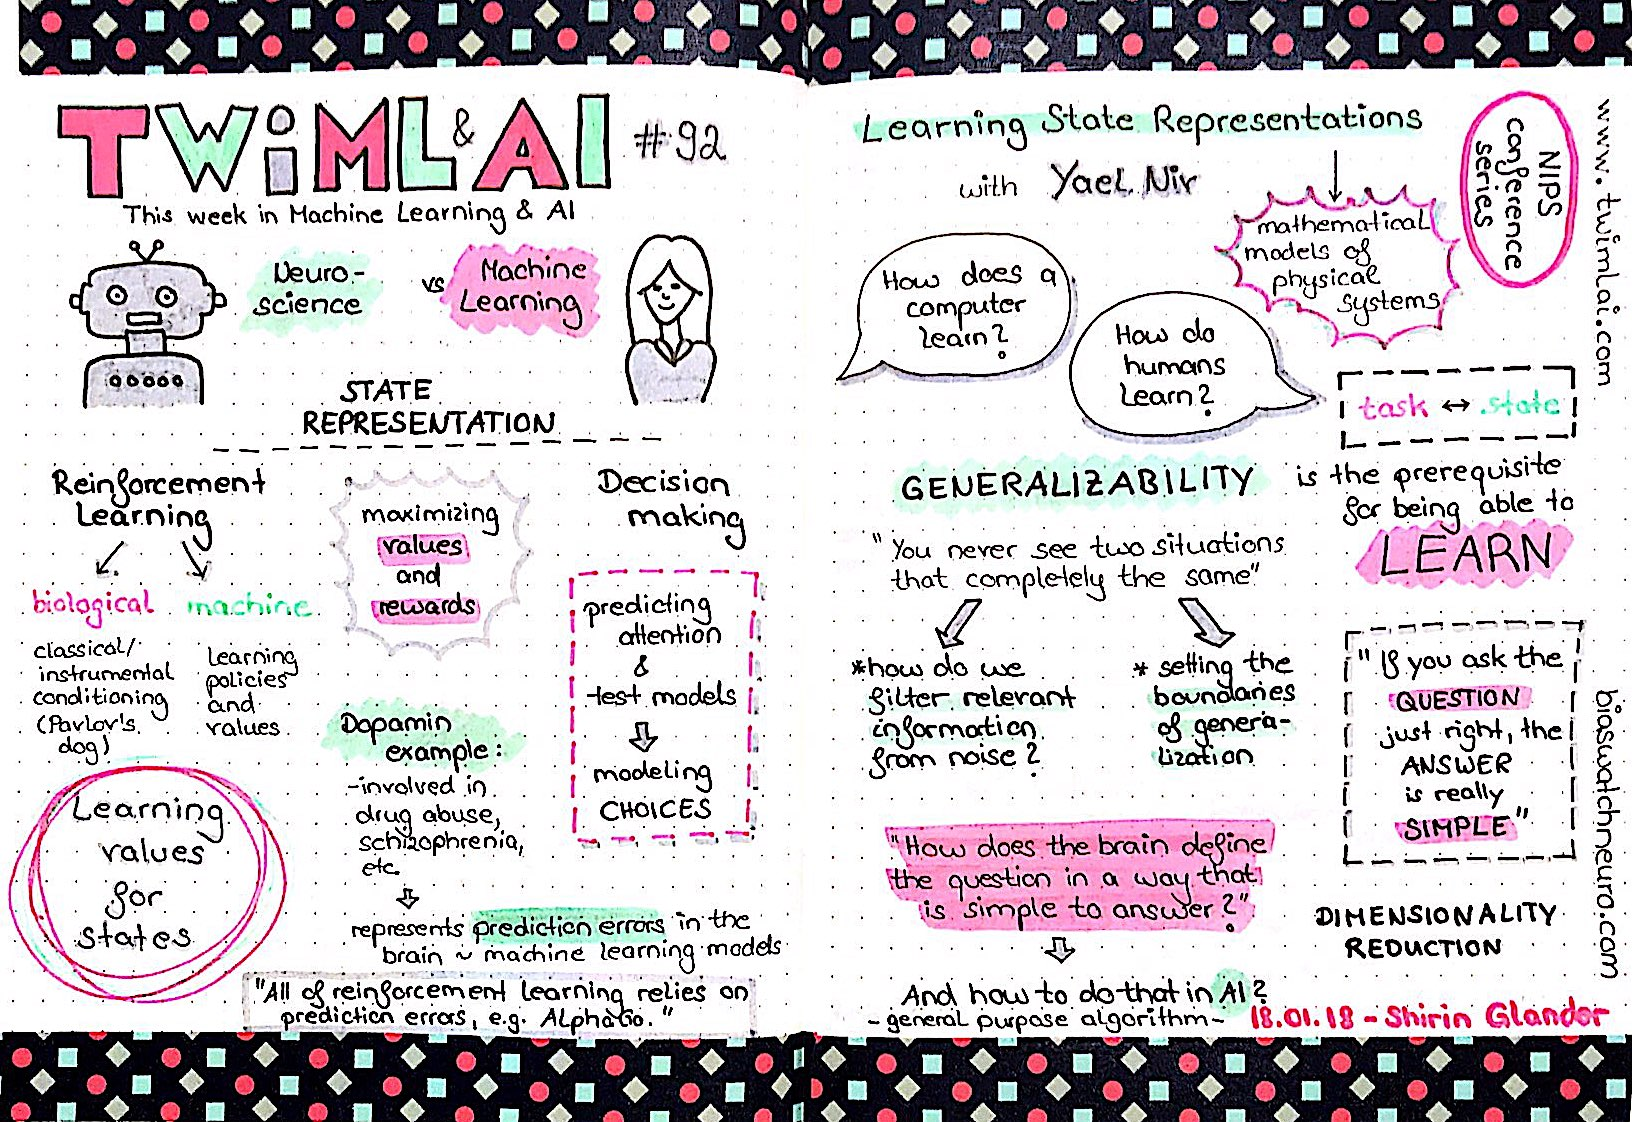 Sketchnotes from TWiML&AI #92: Learning State Representations with Yael Niv